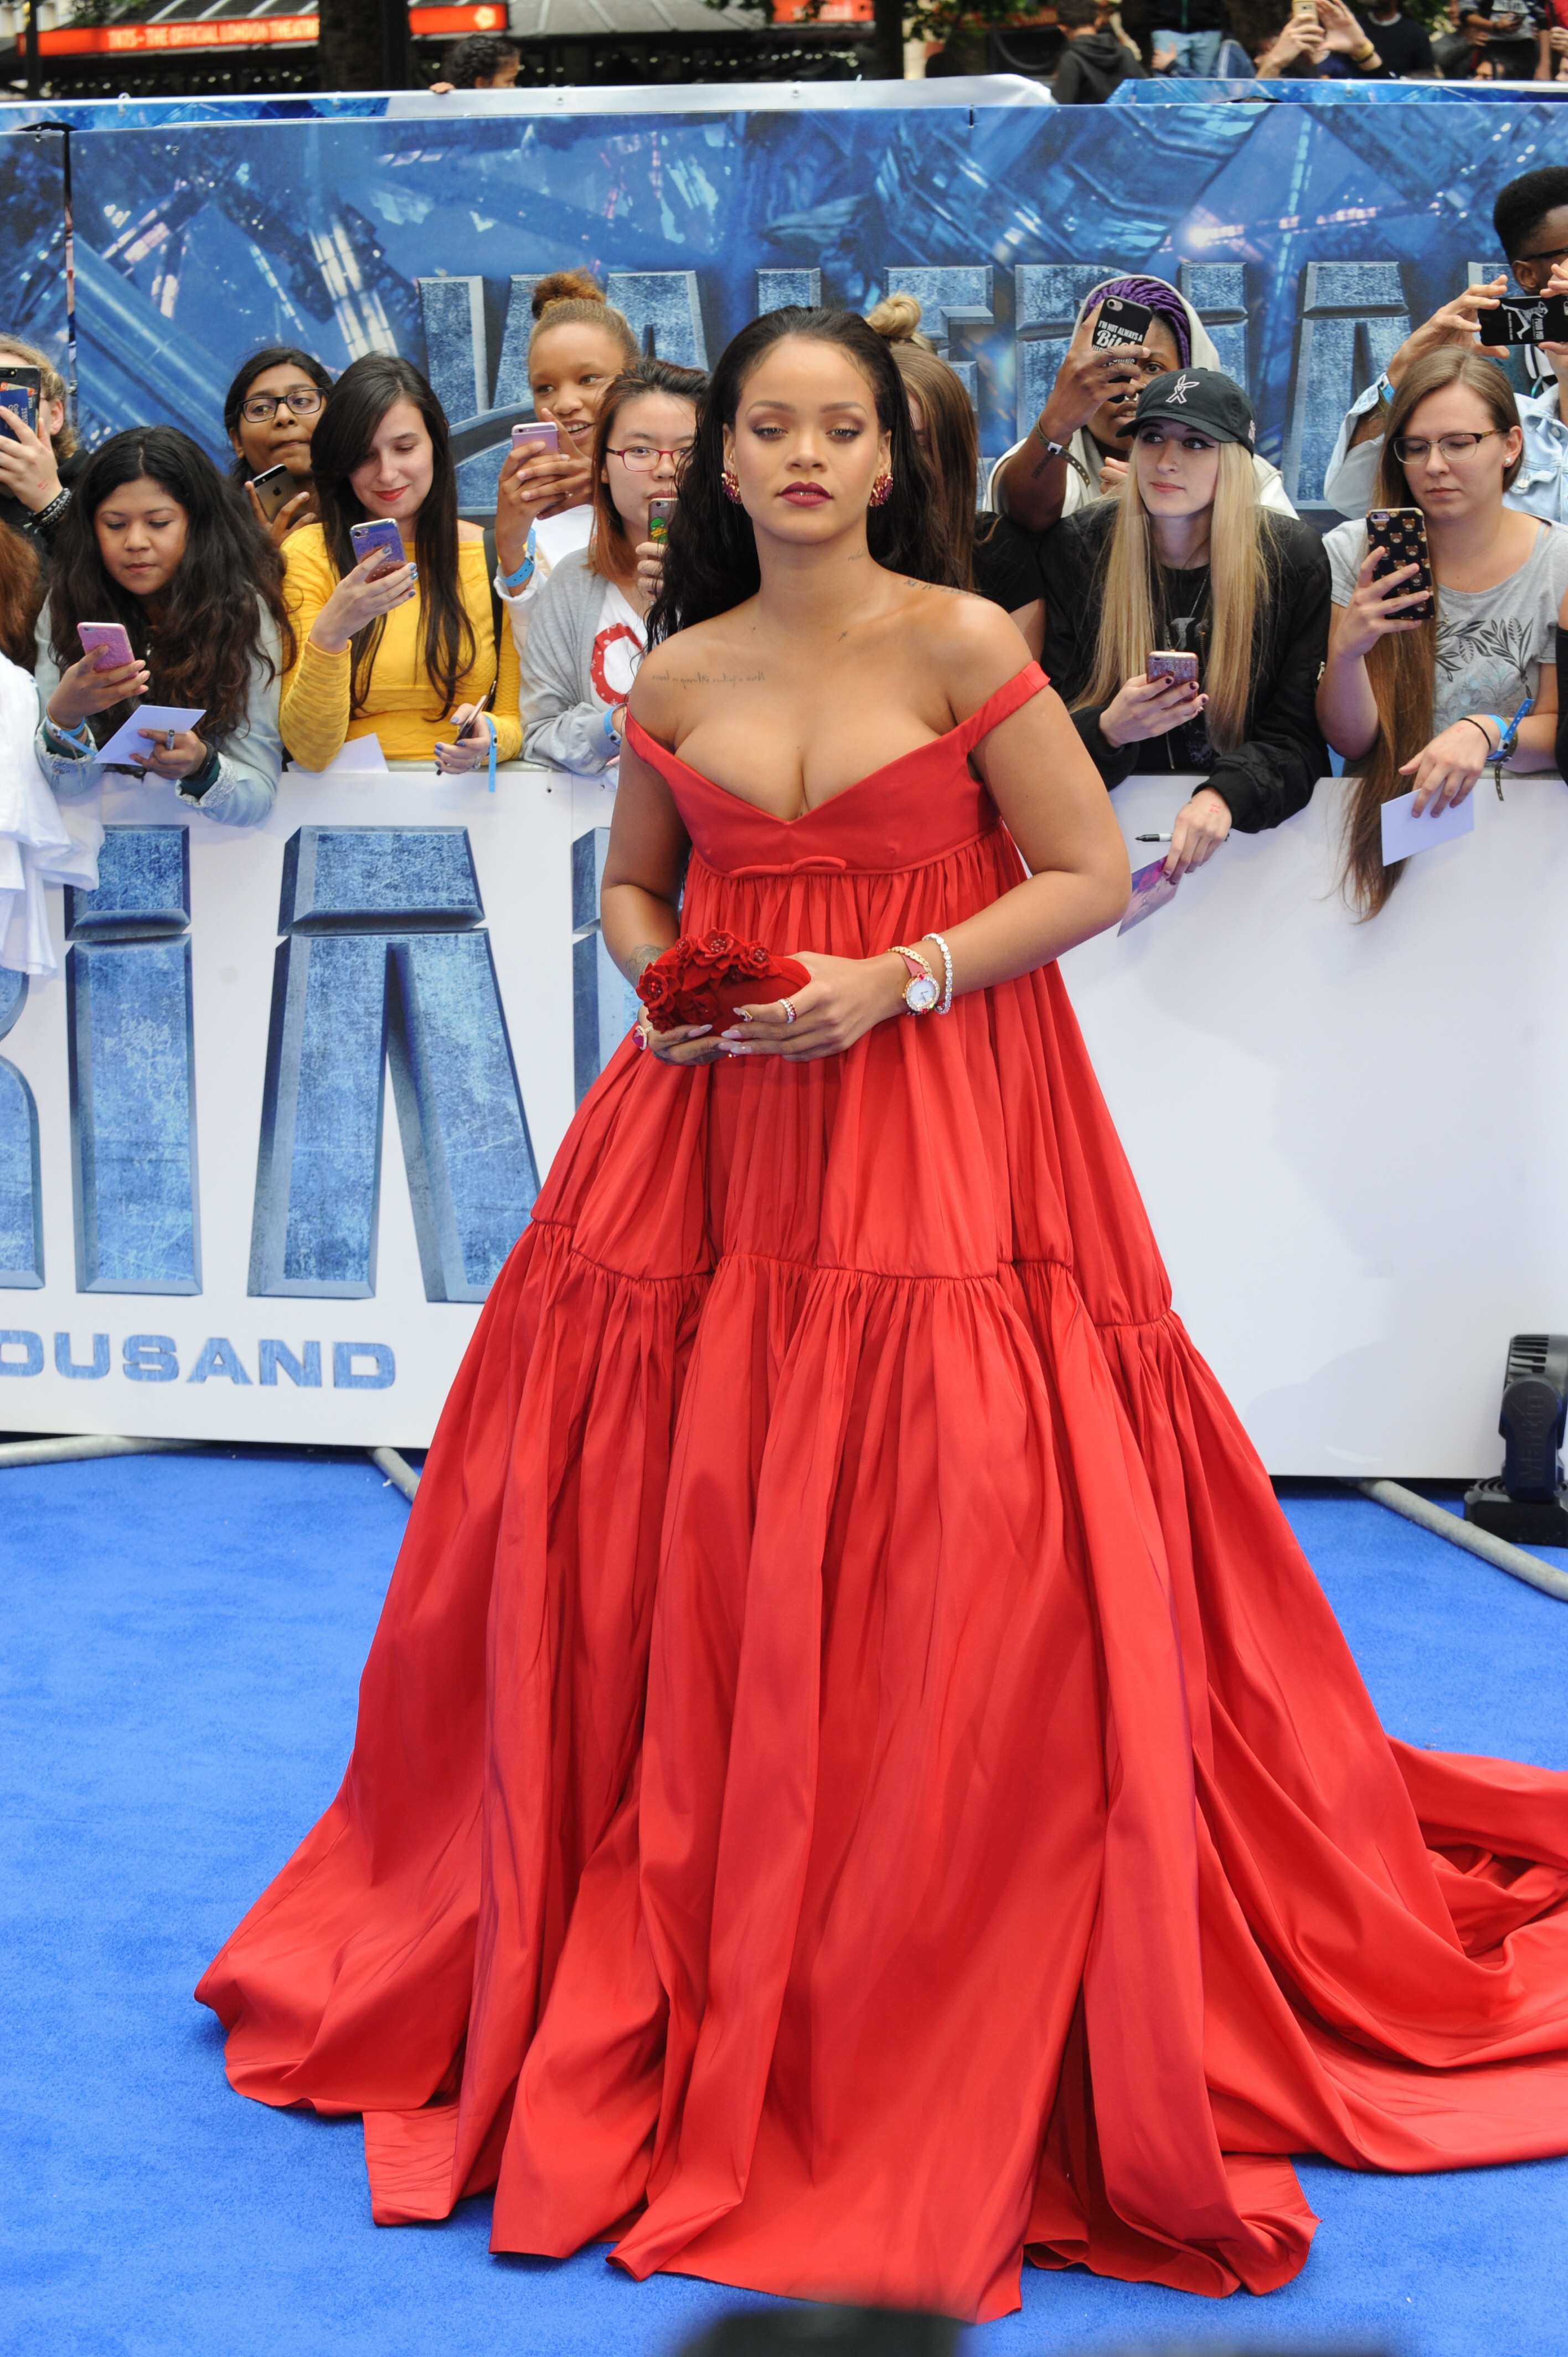 Celebrities arriving at the European premiere of 'Valerian And The City Of A Thousand Planets' at Leicester Square, London, UK. <P> Pictured: Rihanna <B>Ref: SPL1544304  240717  </B><BR/> Picture by: Splash News<BR/> </P><P> <B>Splash News and Pictures</B><BR/> Los Angeles:310-821-2666<BR/> New York:212-619-2666<BR/> London:870-934-2666<BR/> <span id=